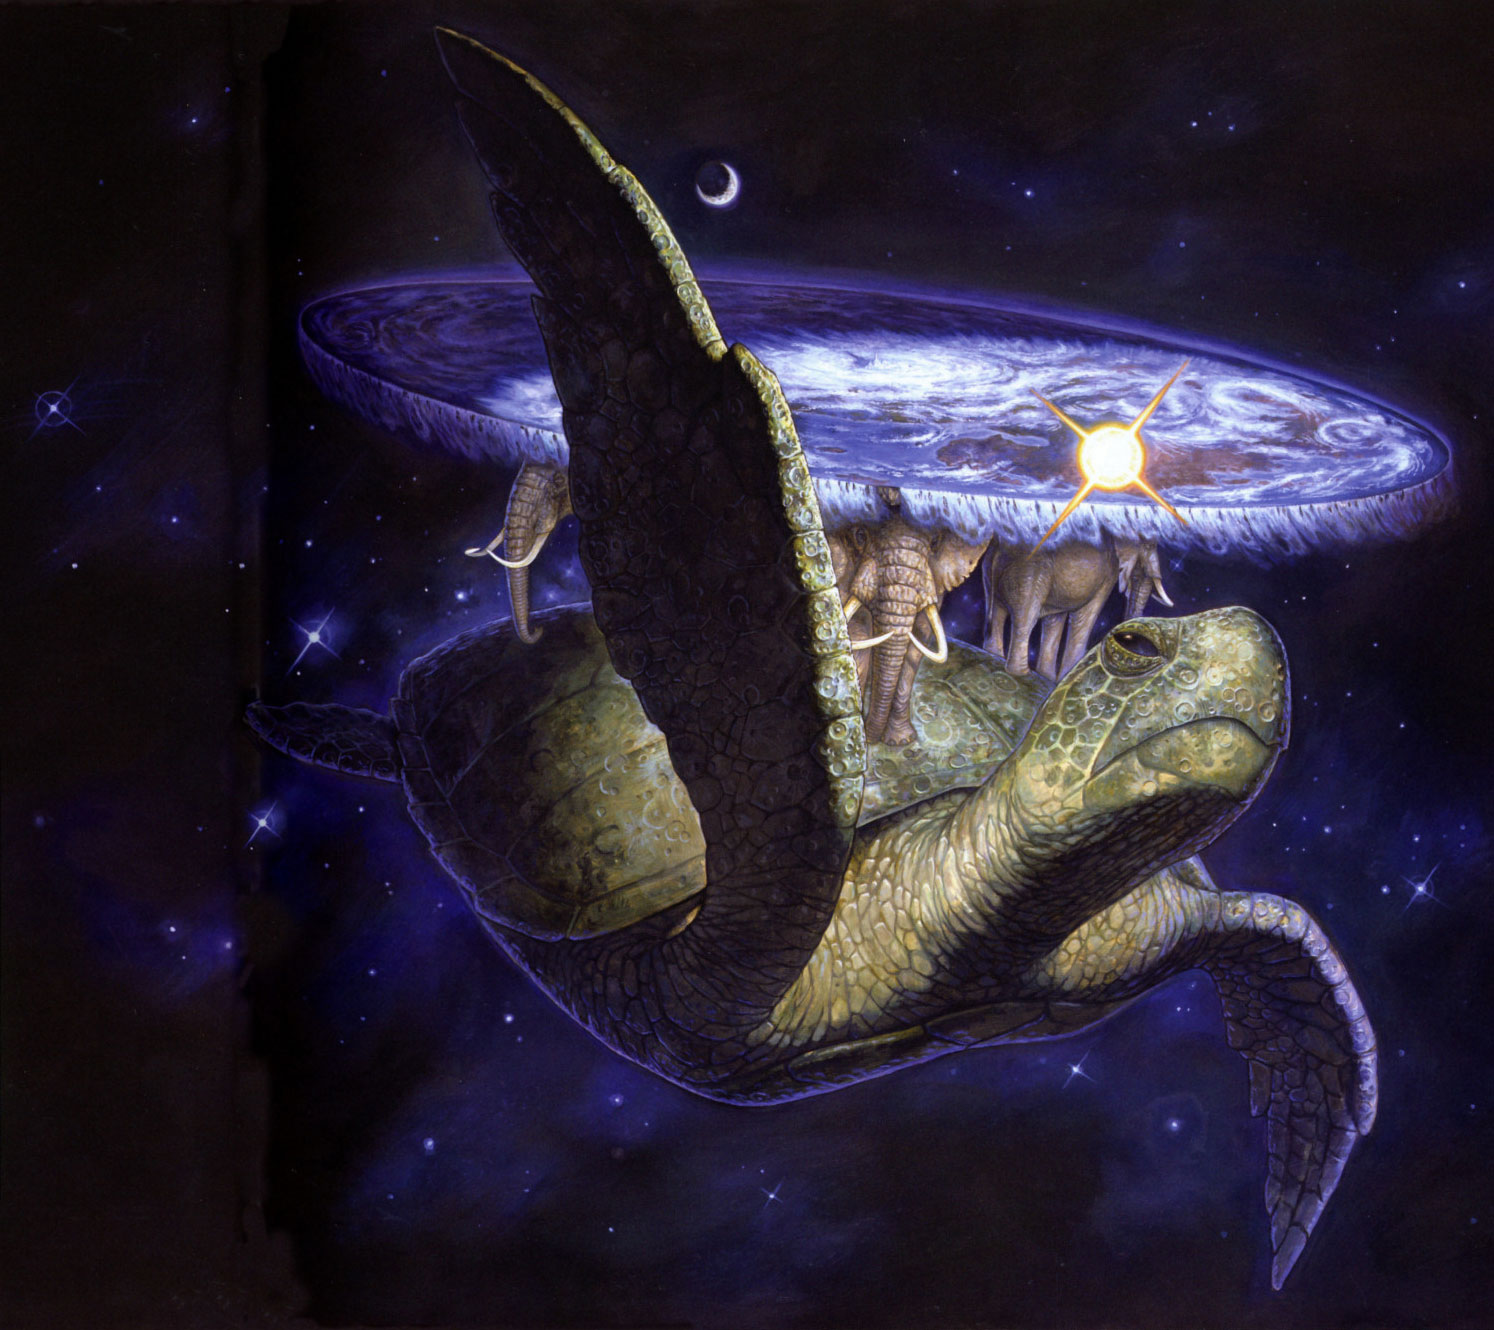 Best 33 Discworld Wallpaper on HipWallpaper Discworld Death 1494x1330